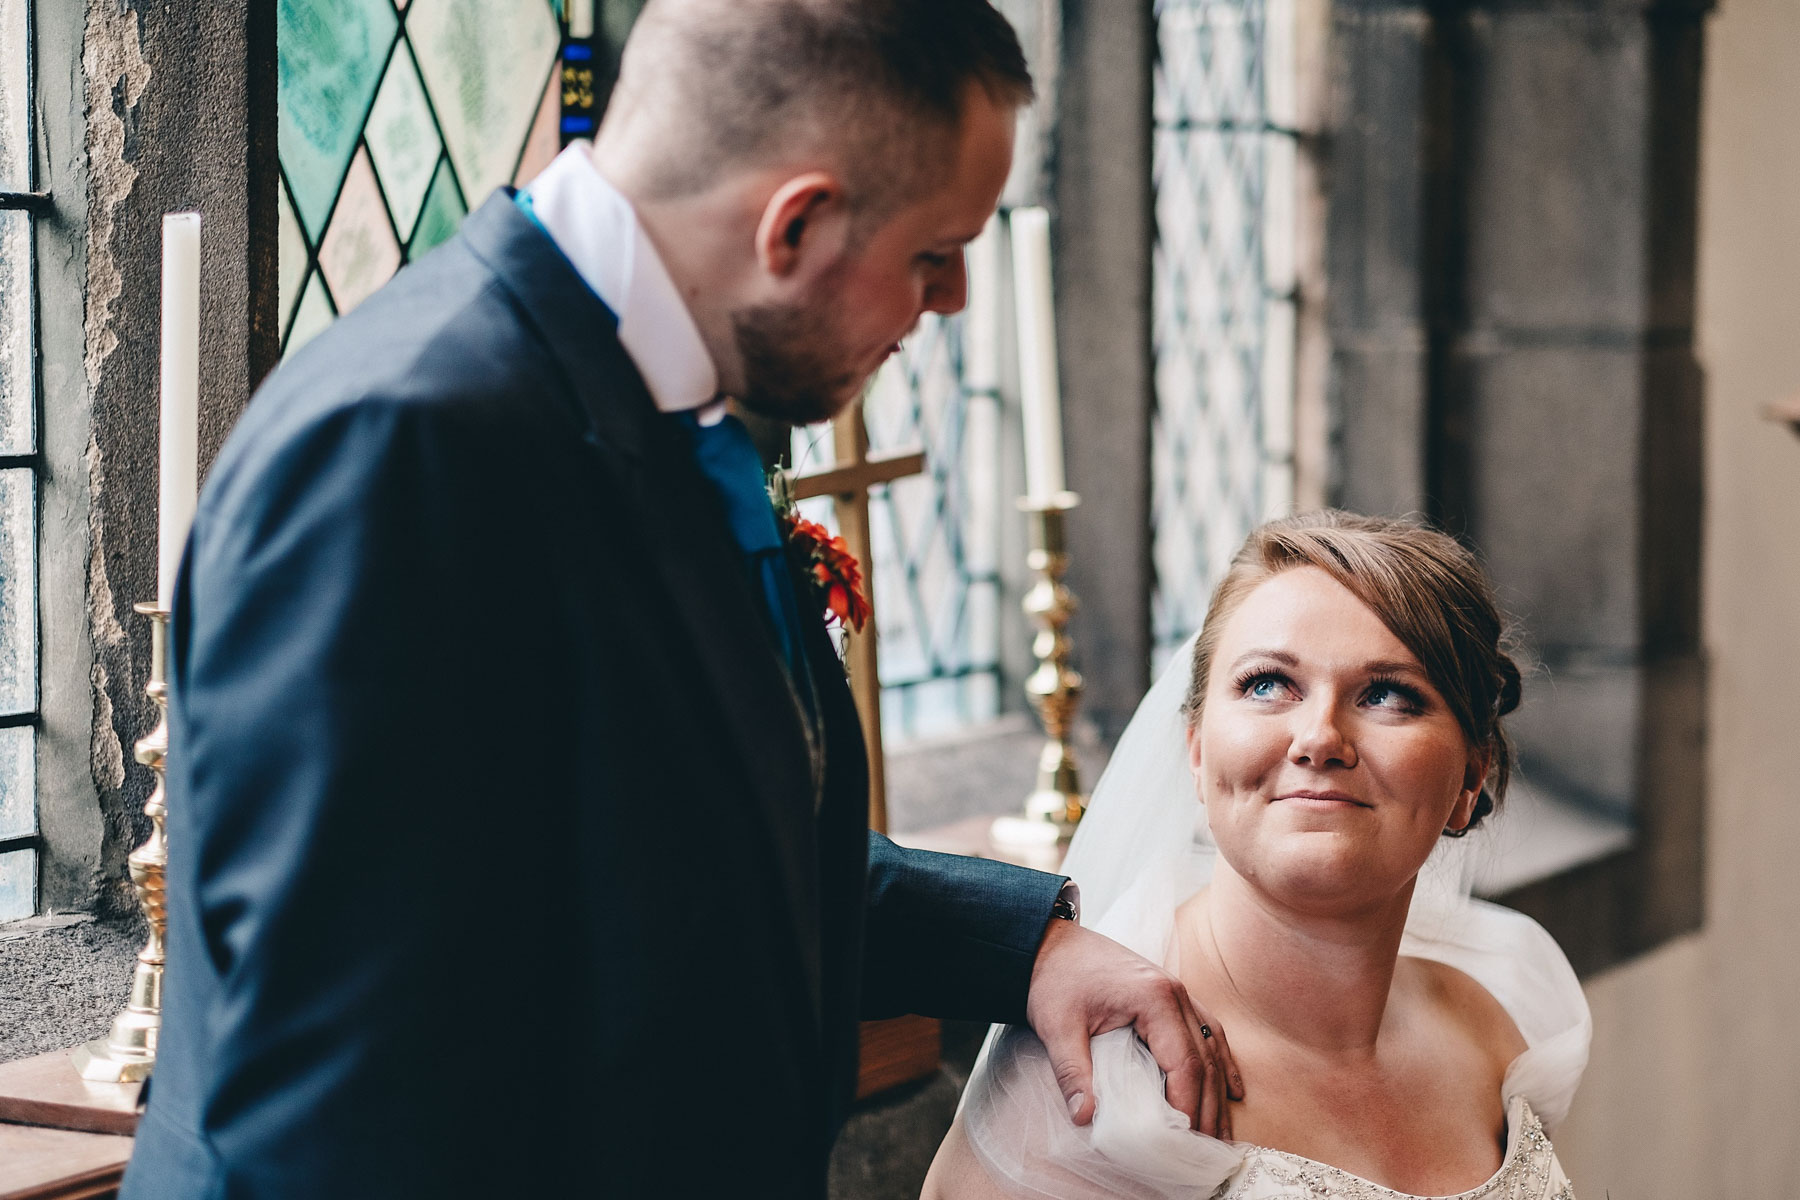 Bride and groom look lovingly at each other